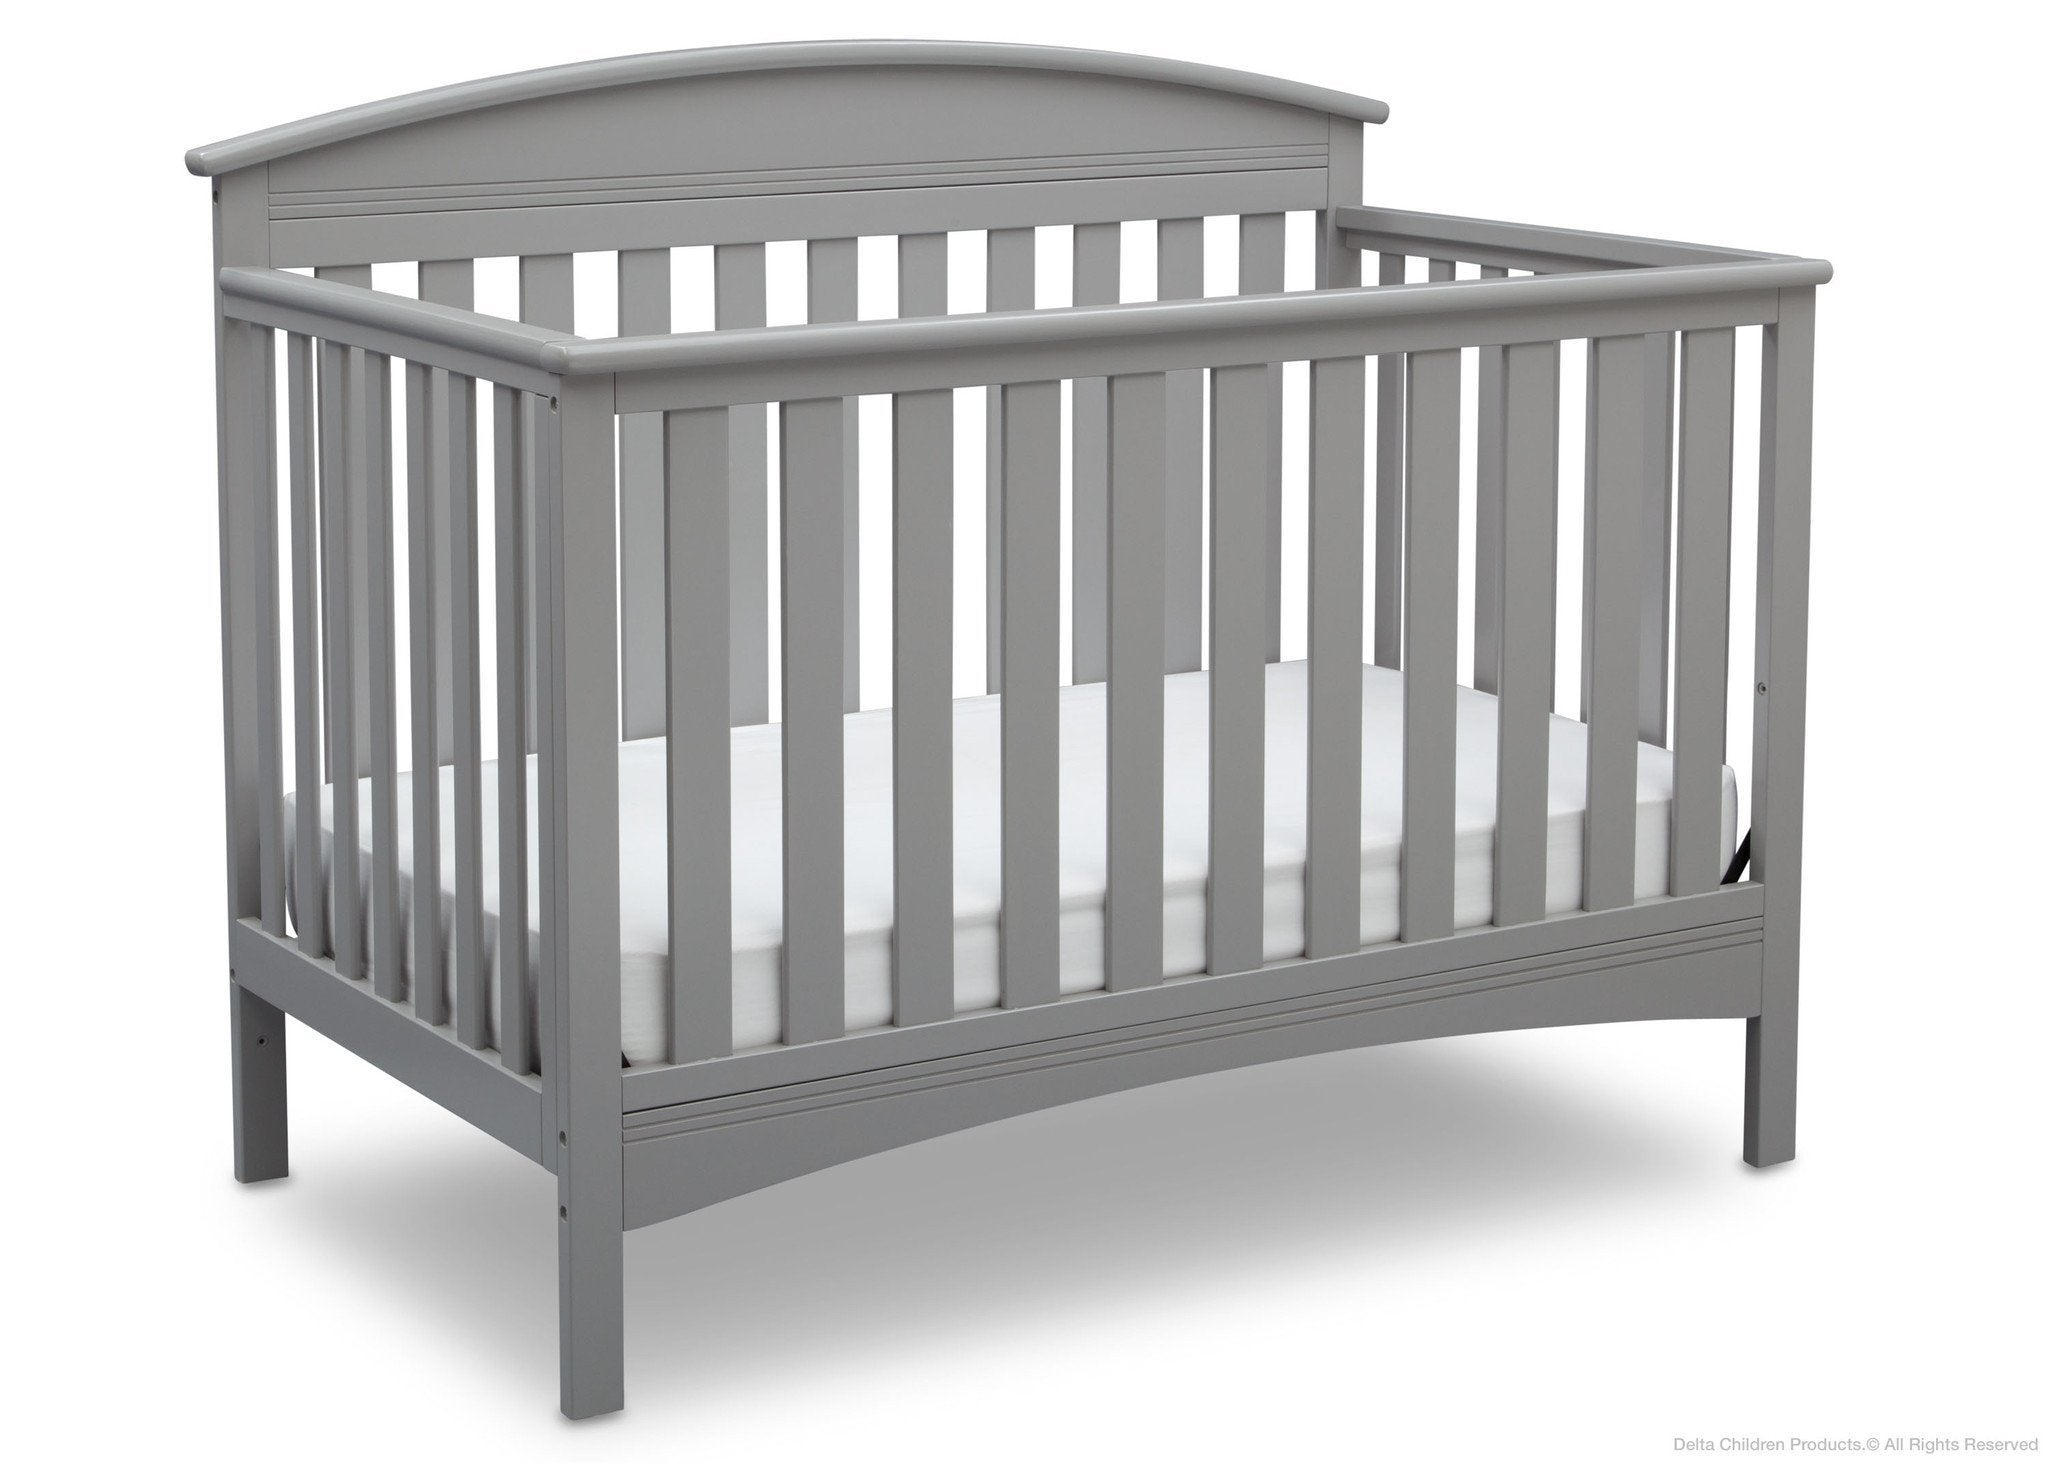 Delta Children Grey (026) Abby 4-in-1 Crib Side View a3a